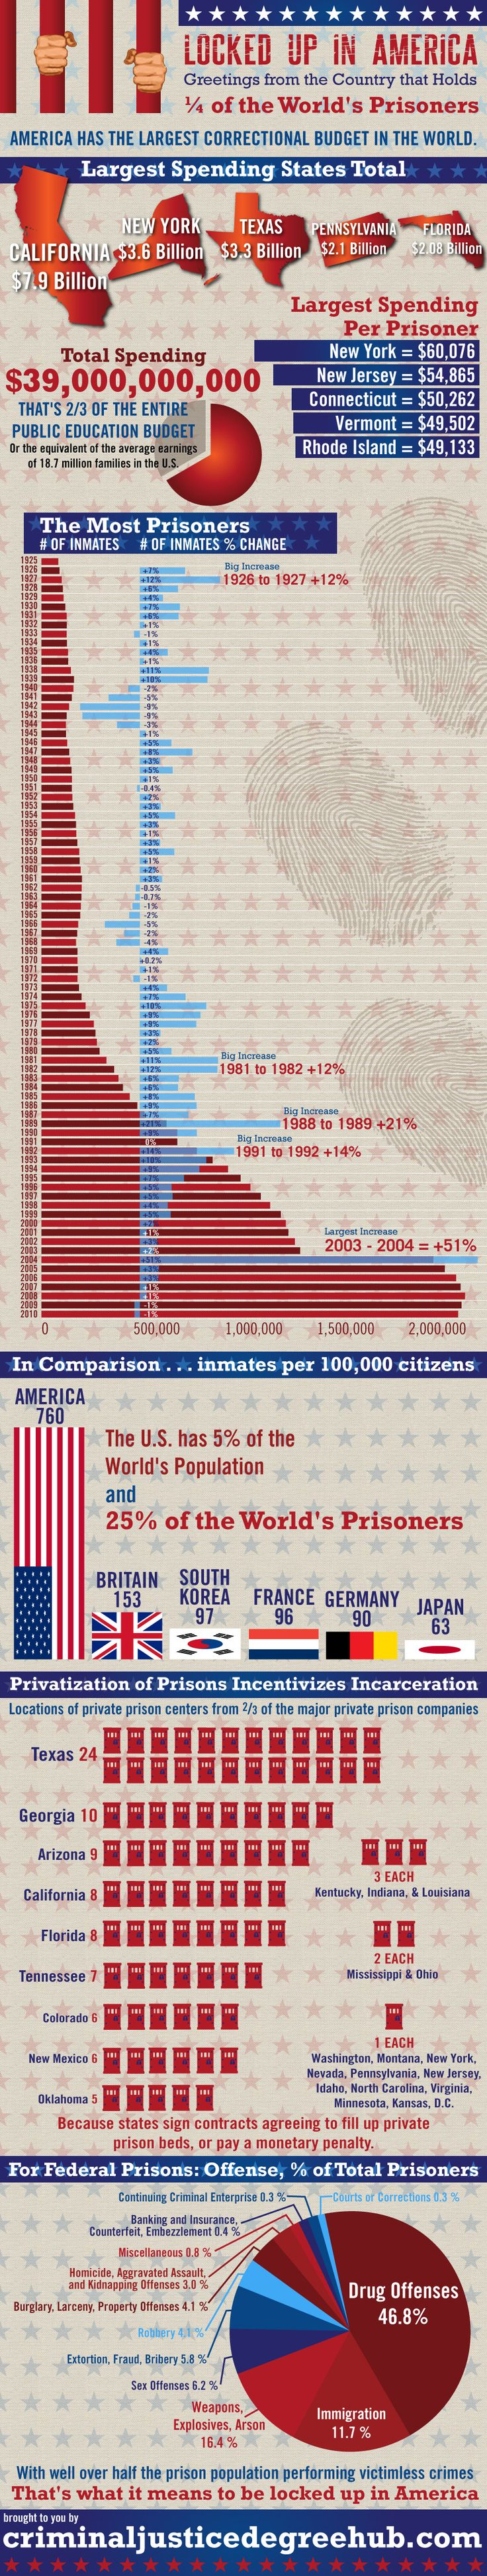 Our country is a rotten shame. // Locked Up in America